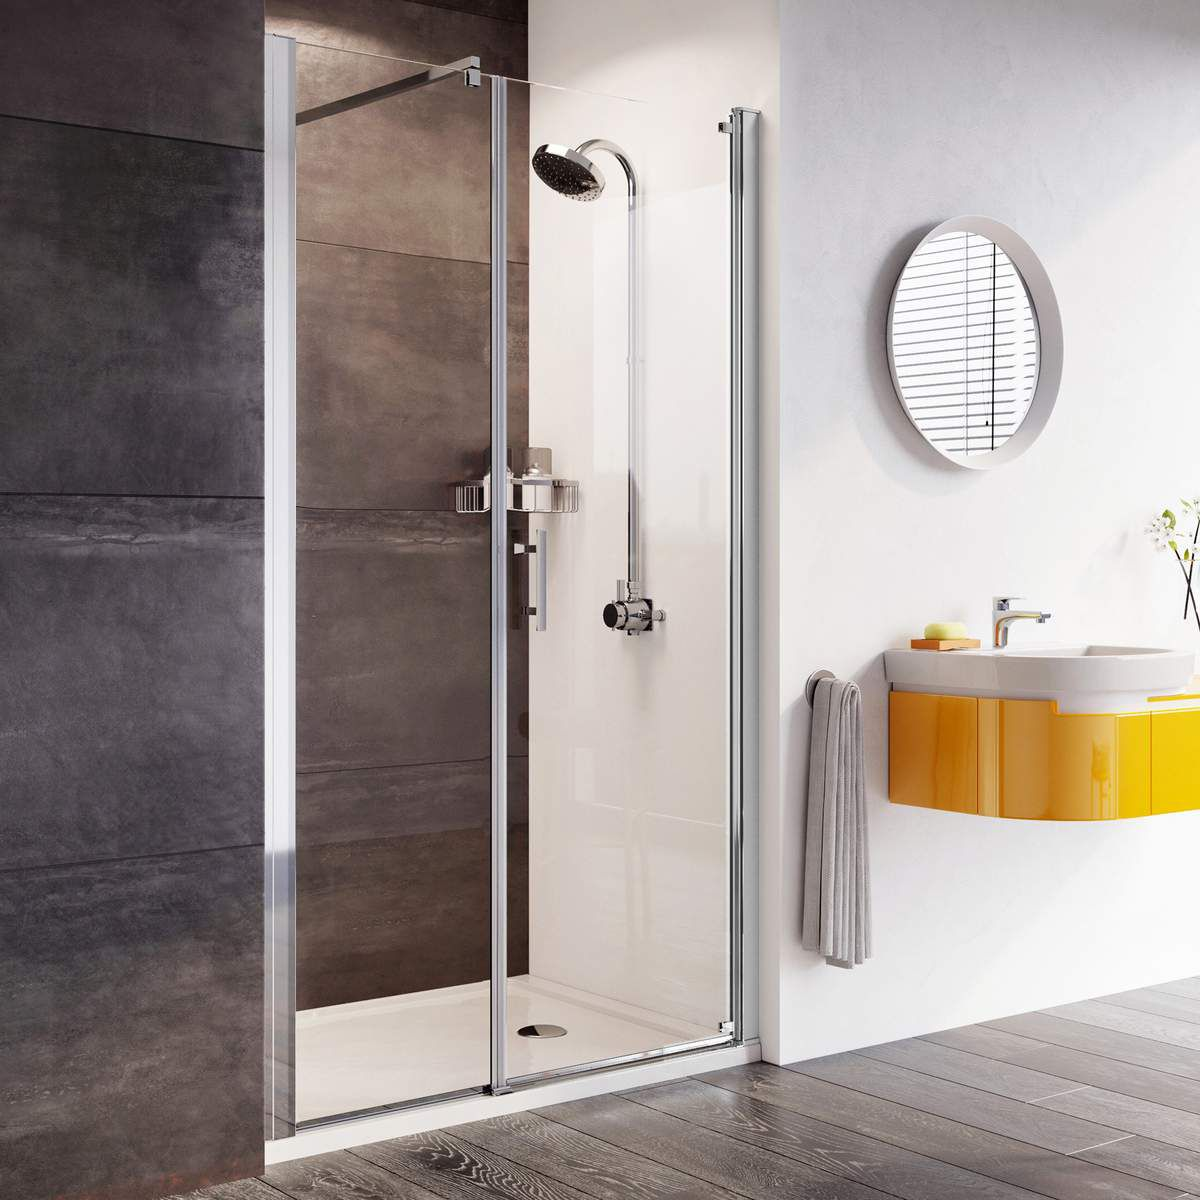 Roman Innov8 Pivot Shower Door With In Line Panel For Alcove Installation